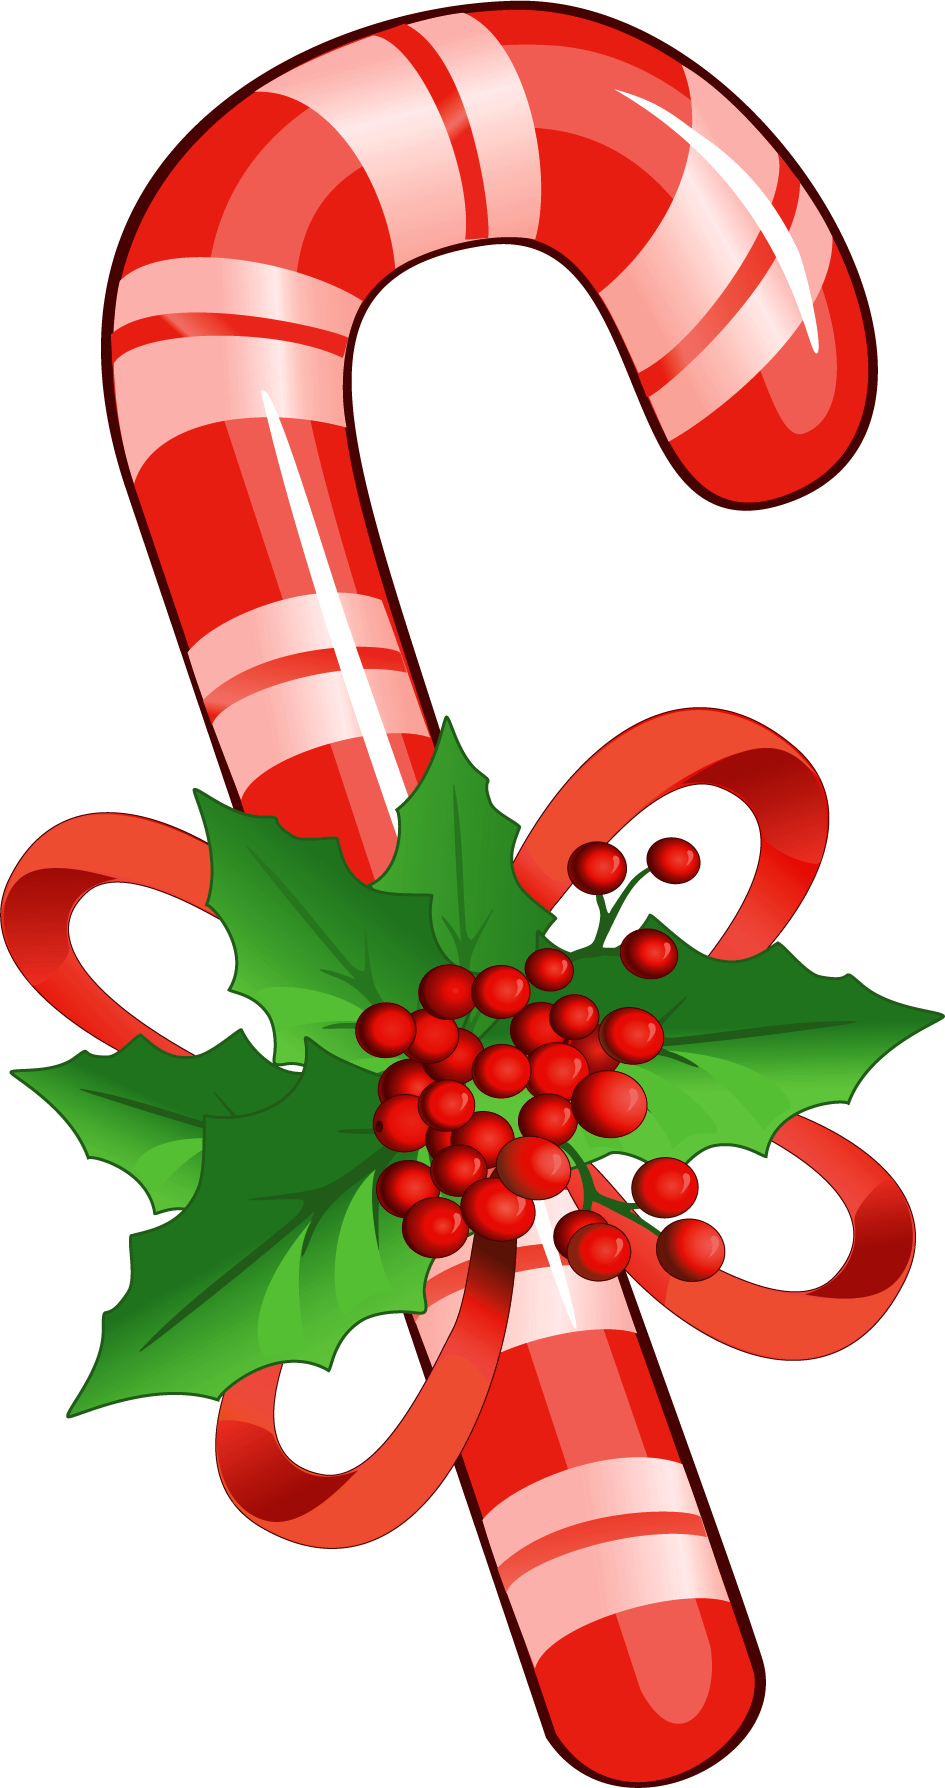 Candy Cane Clipart-Candy cane clipart-9